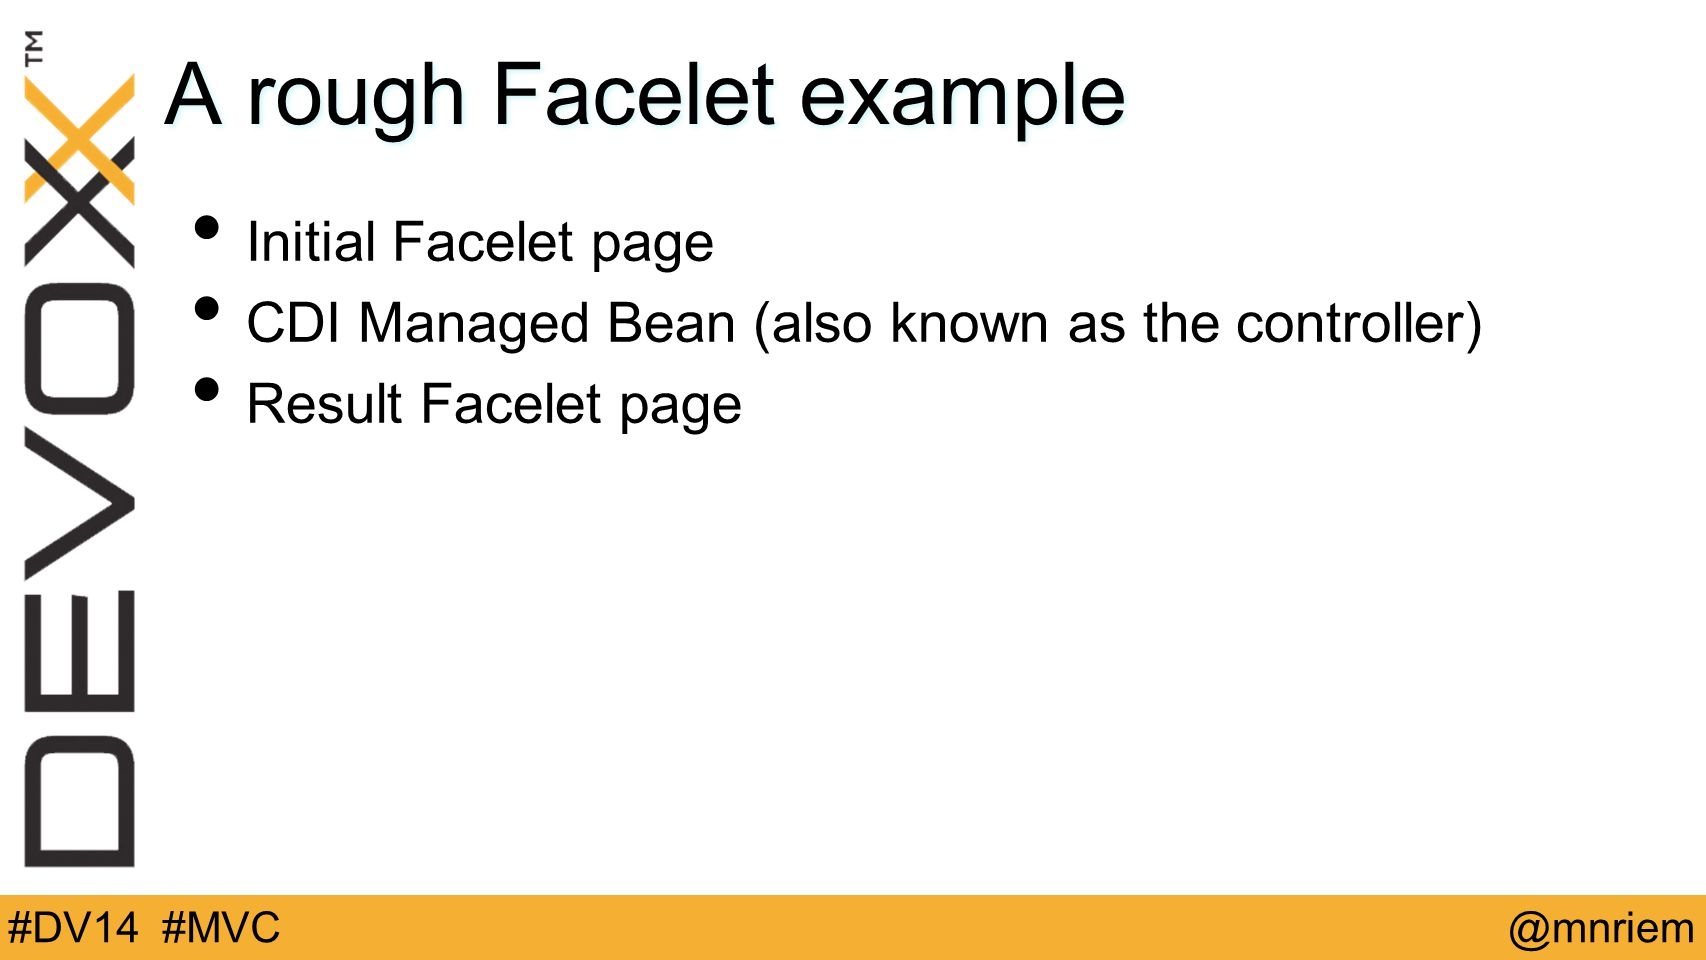 @mnriem#DV14 #MVC A rough Facelet example Initial Facelet page CDI Managed Bean (also known as the controller) Result Facelet page